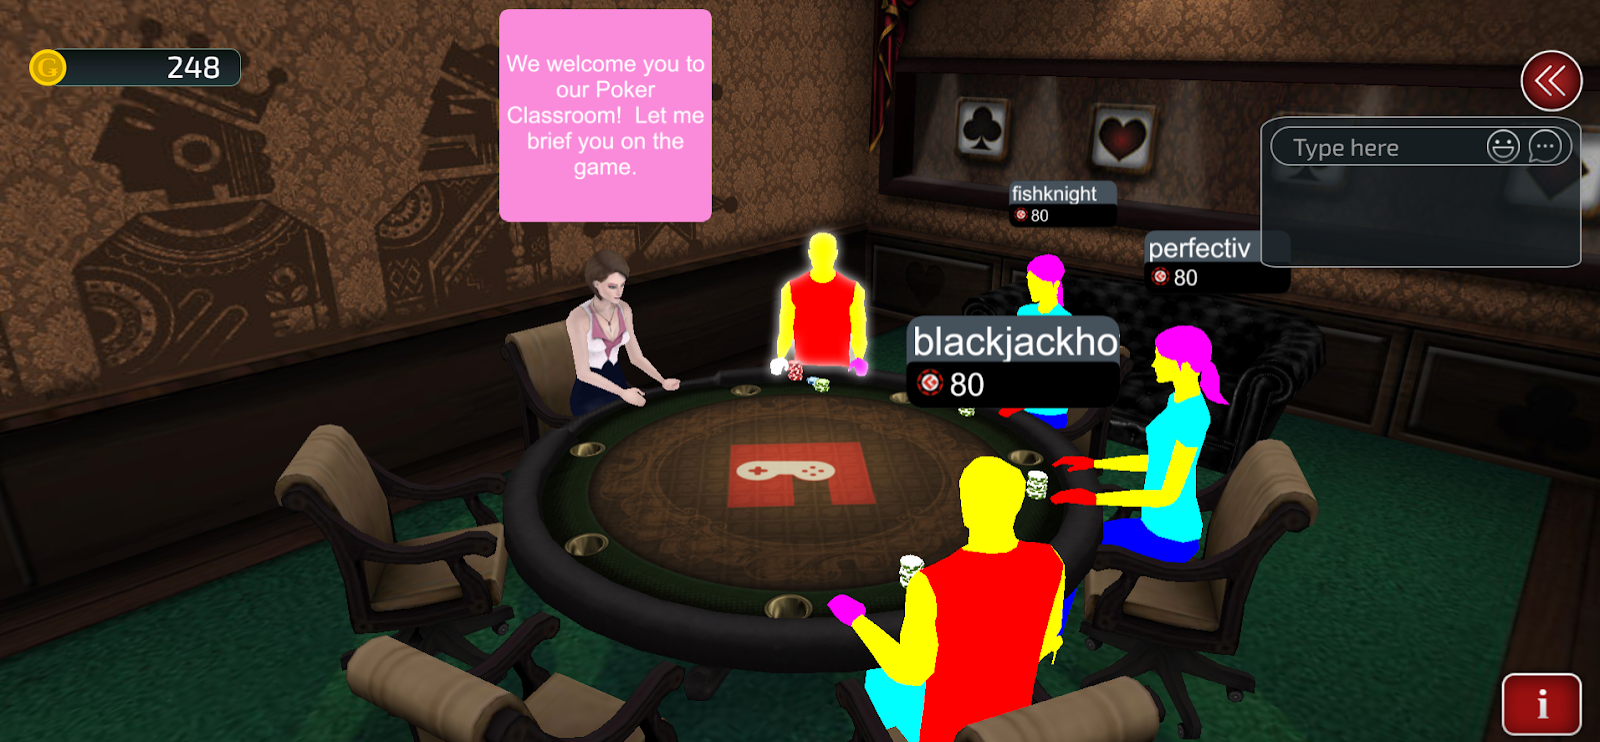 Gamentio welcome you to the poker classroom